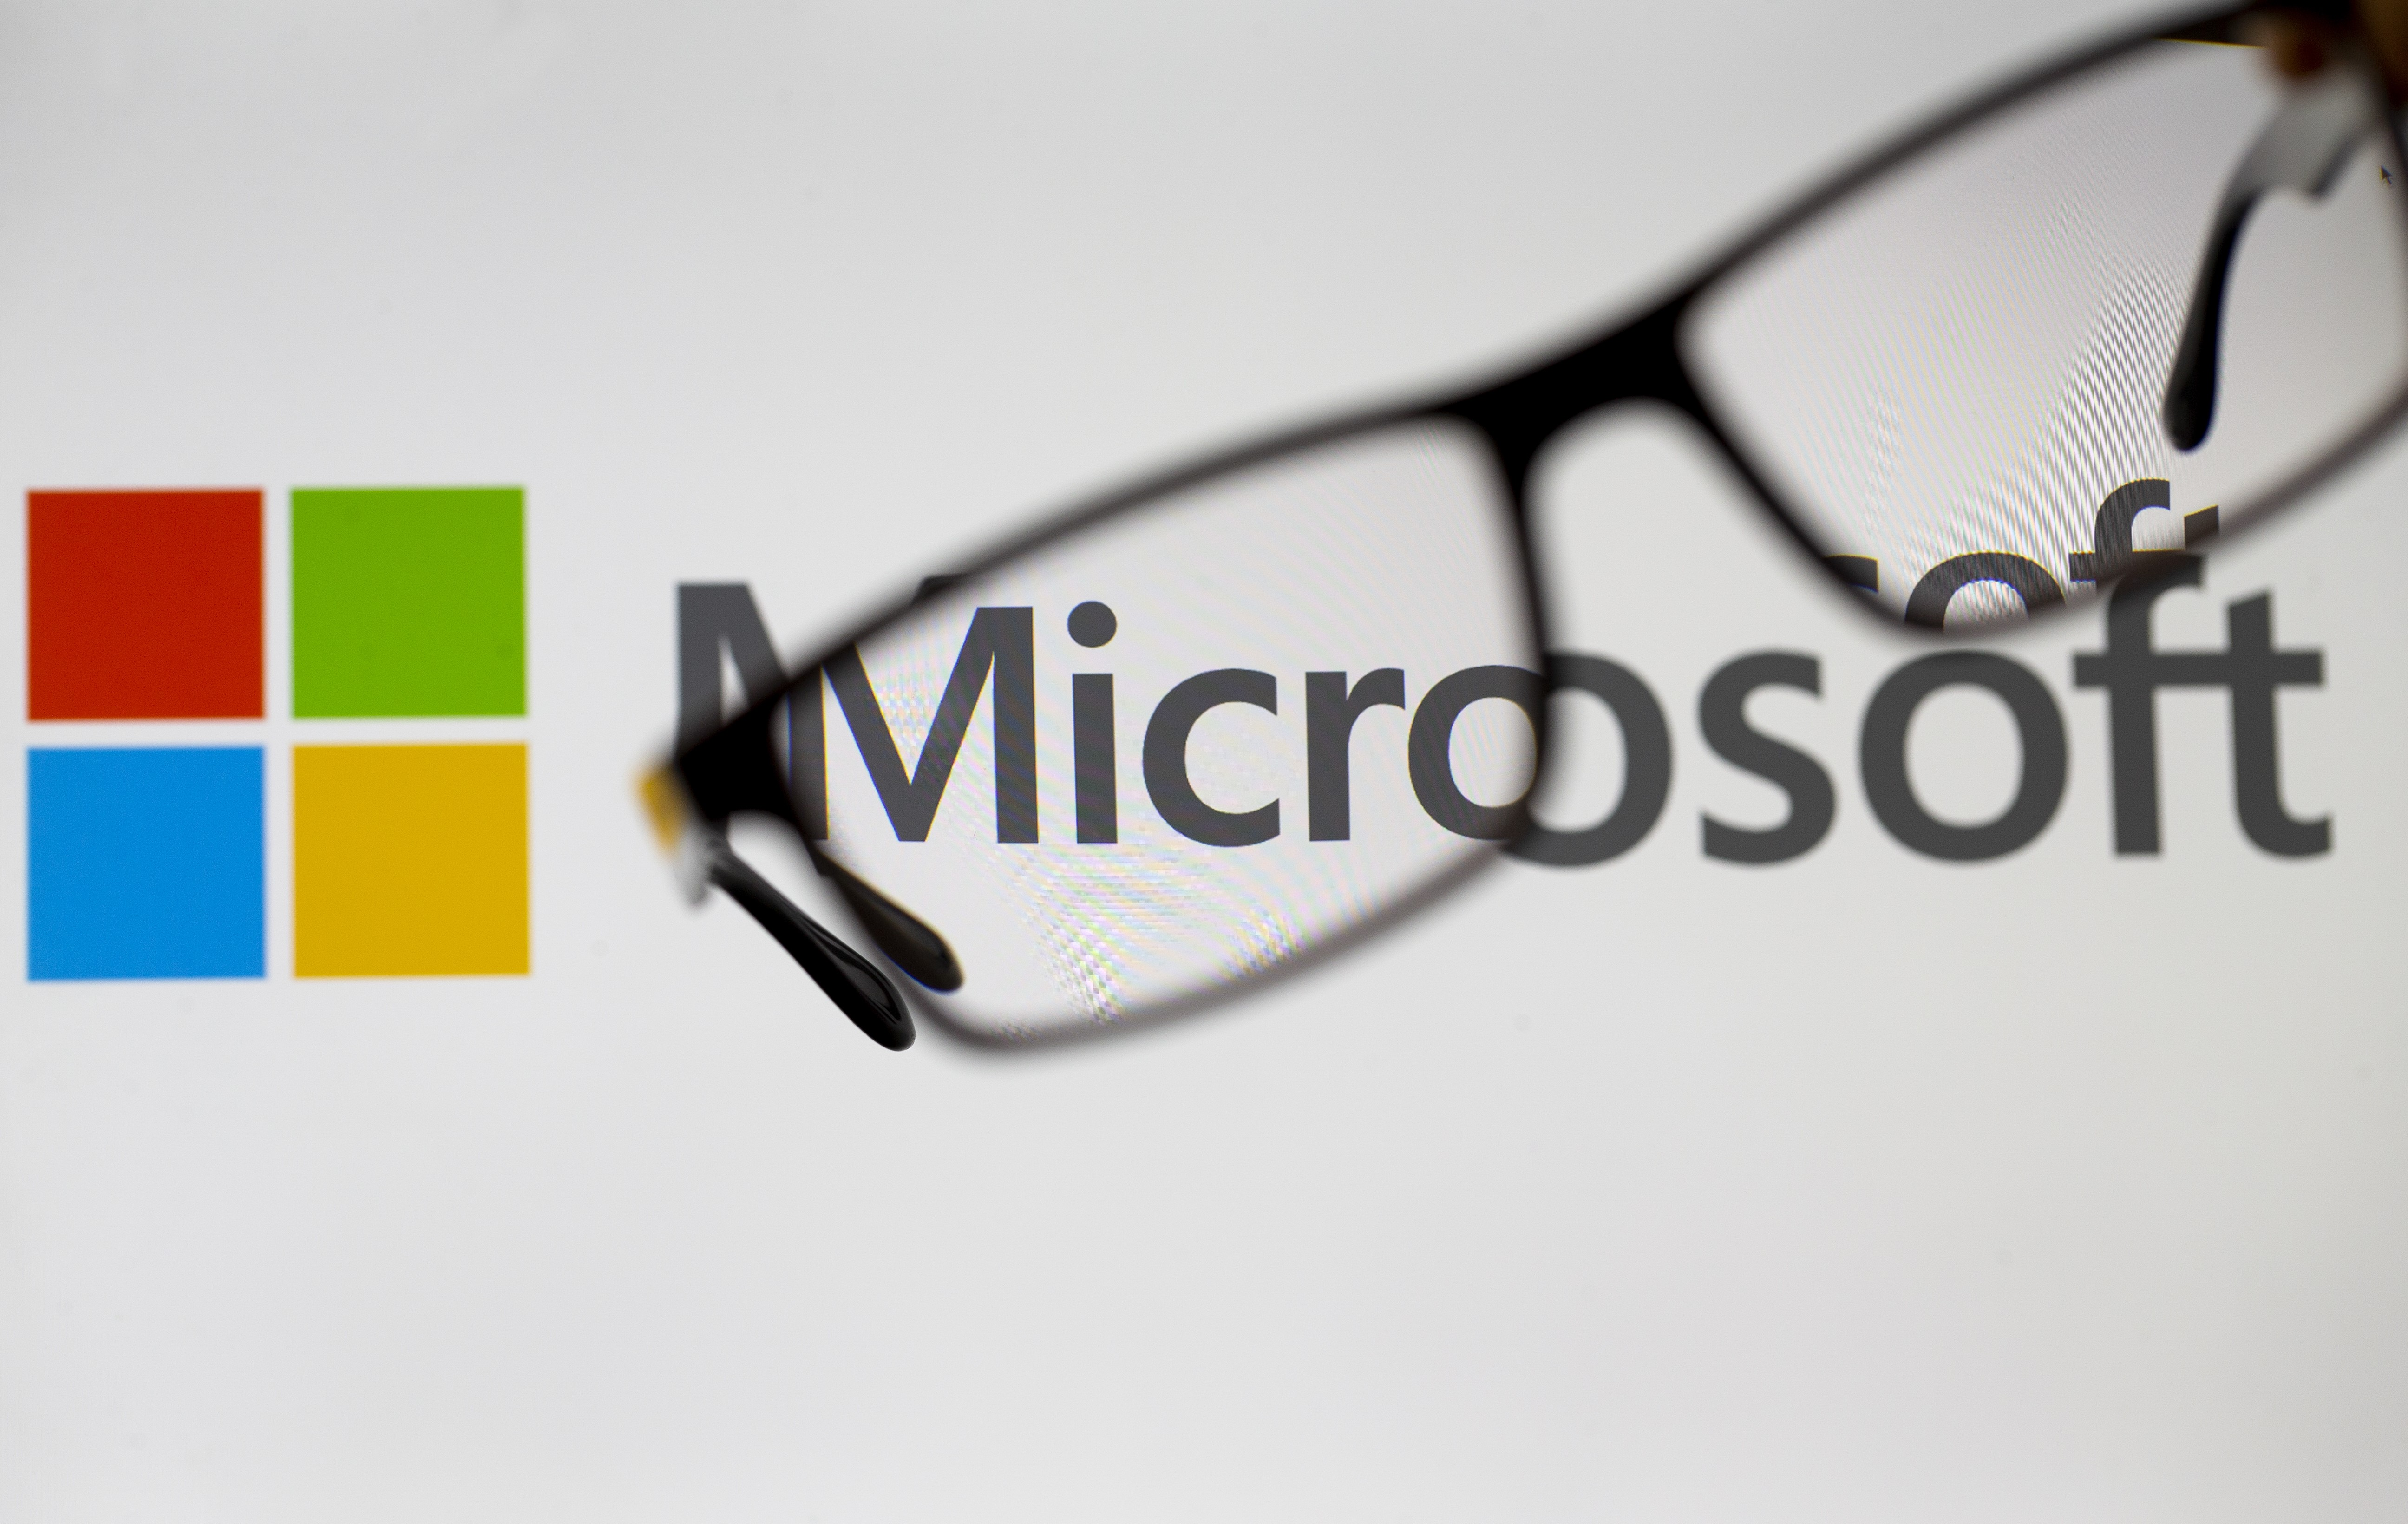 Glasses are seen in front of a computer screen showing a Microsoft logo in Ankara, Turkey on July 19, 2018.